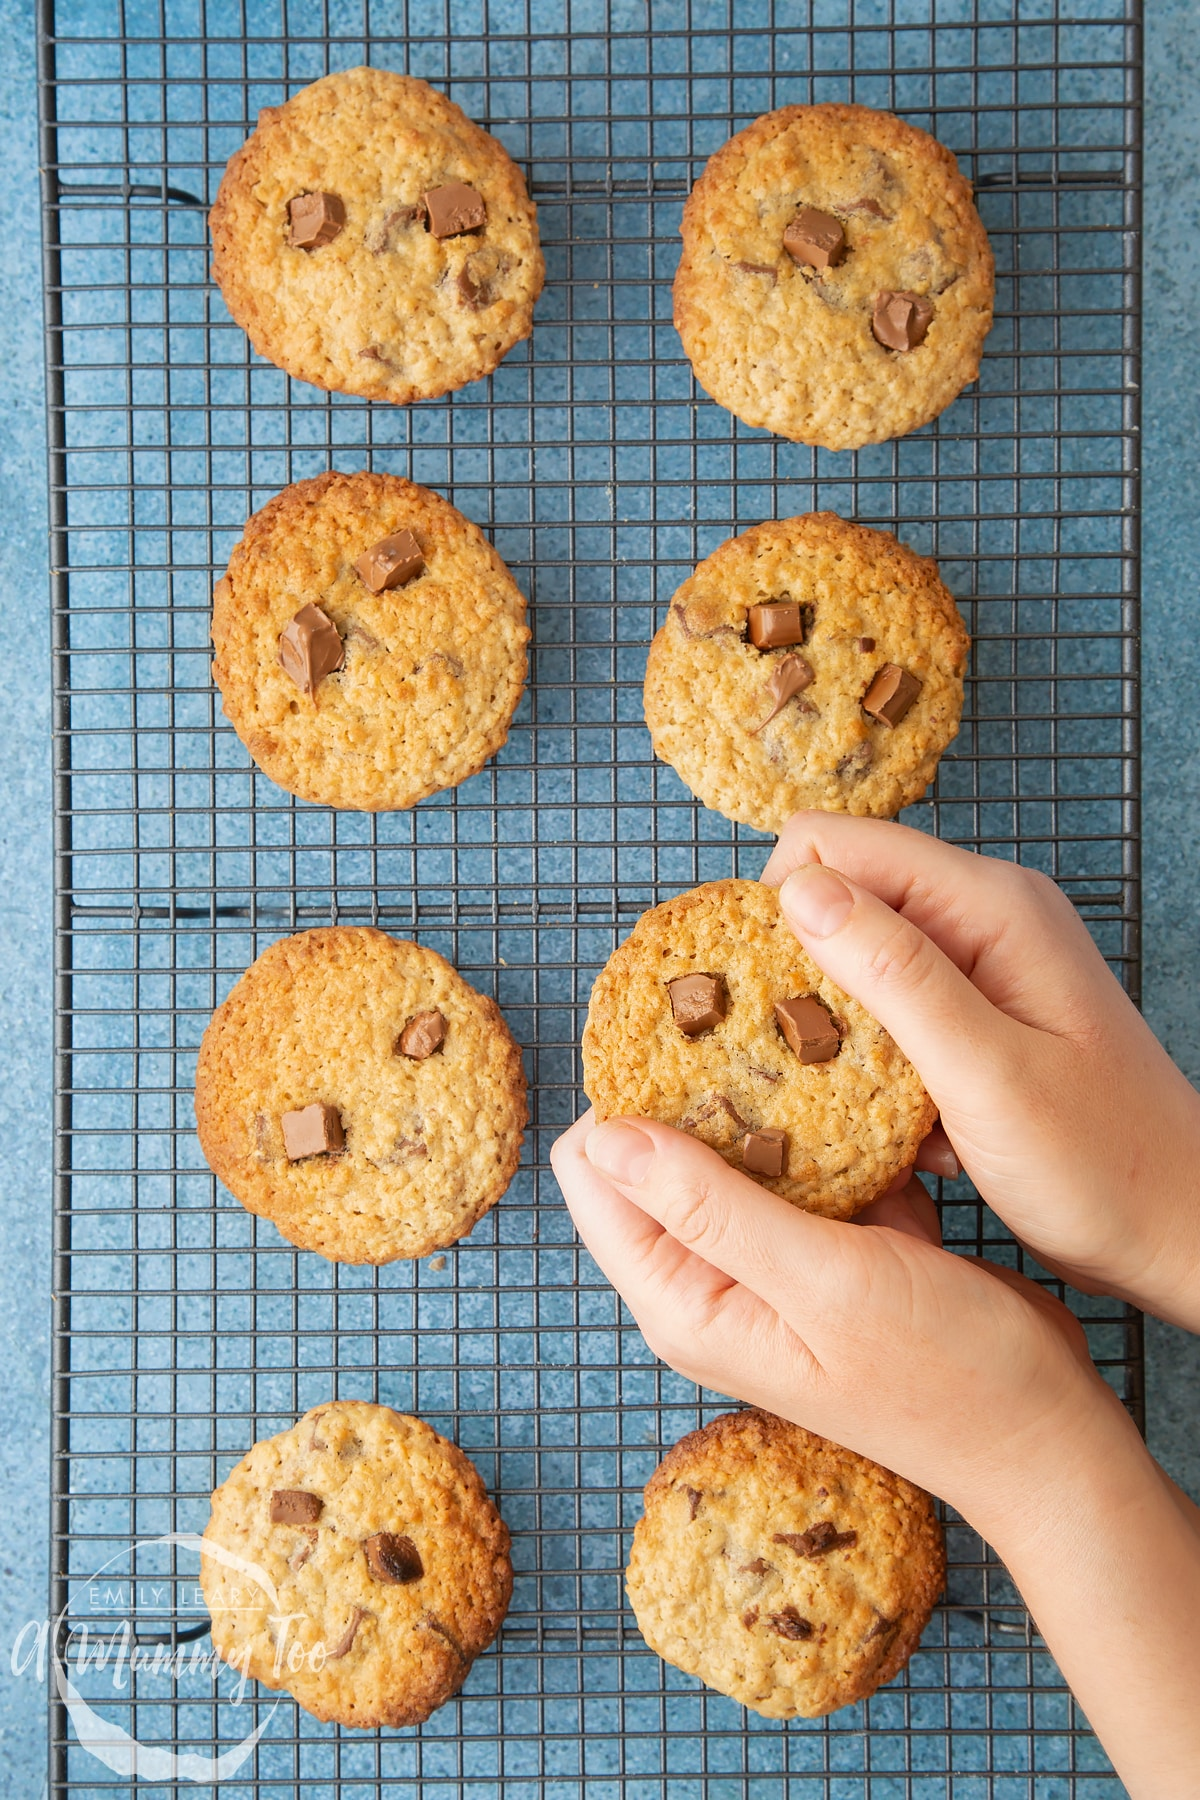 Hands breaking an oatmeal chocolate chip cookie. More cookie monster cookies are on a wire rack.